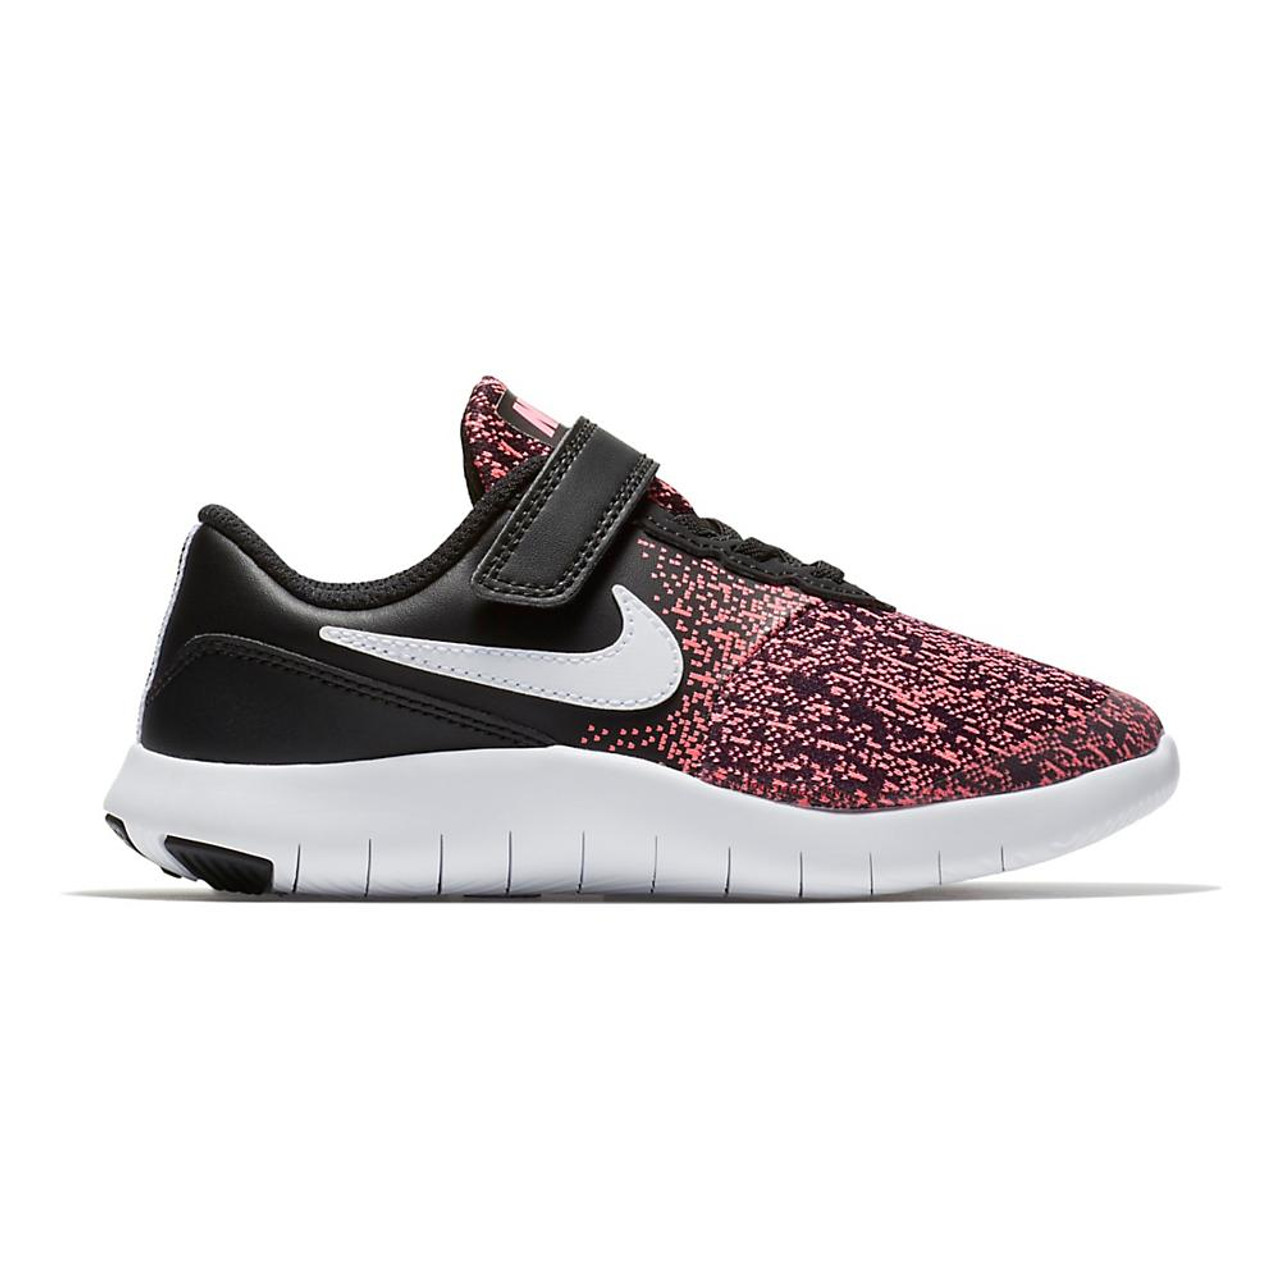 premium selection 50a0a 4b17e Girls Nike Flex Contact Preschool color-Black Pink